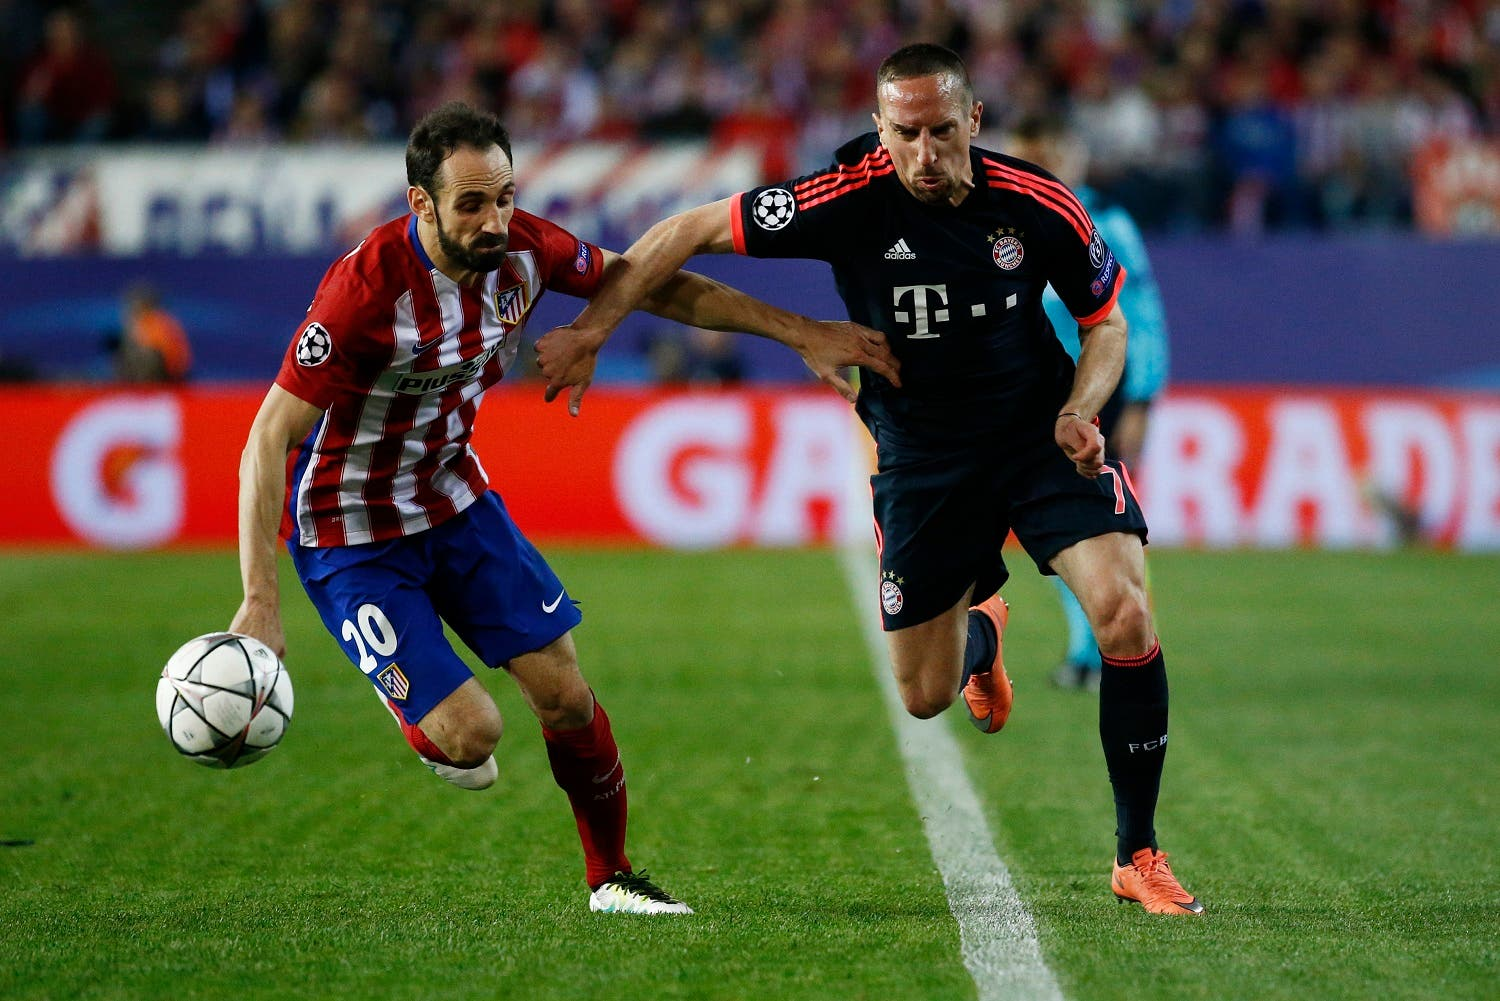 Bayern Munich's Franck Ribery in action with Atletico Madrid's Juanfran. (Reuters)